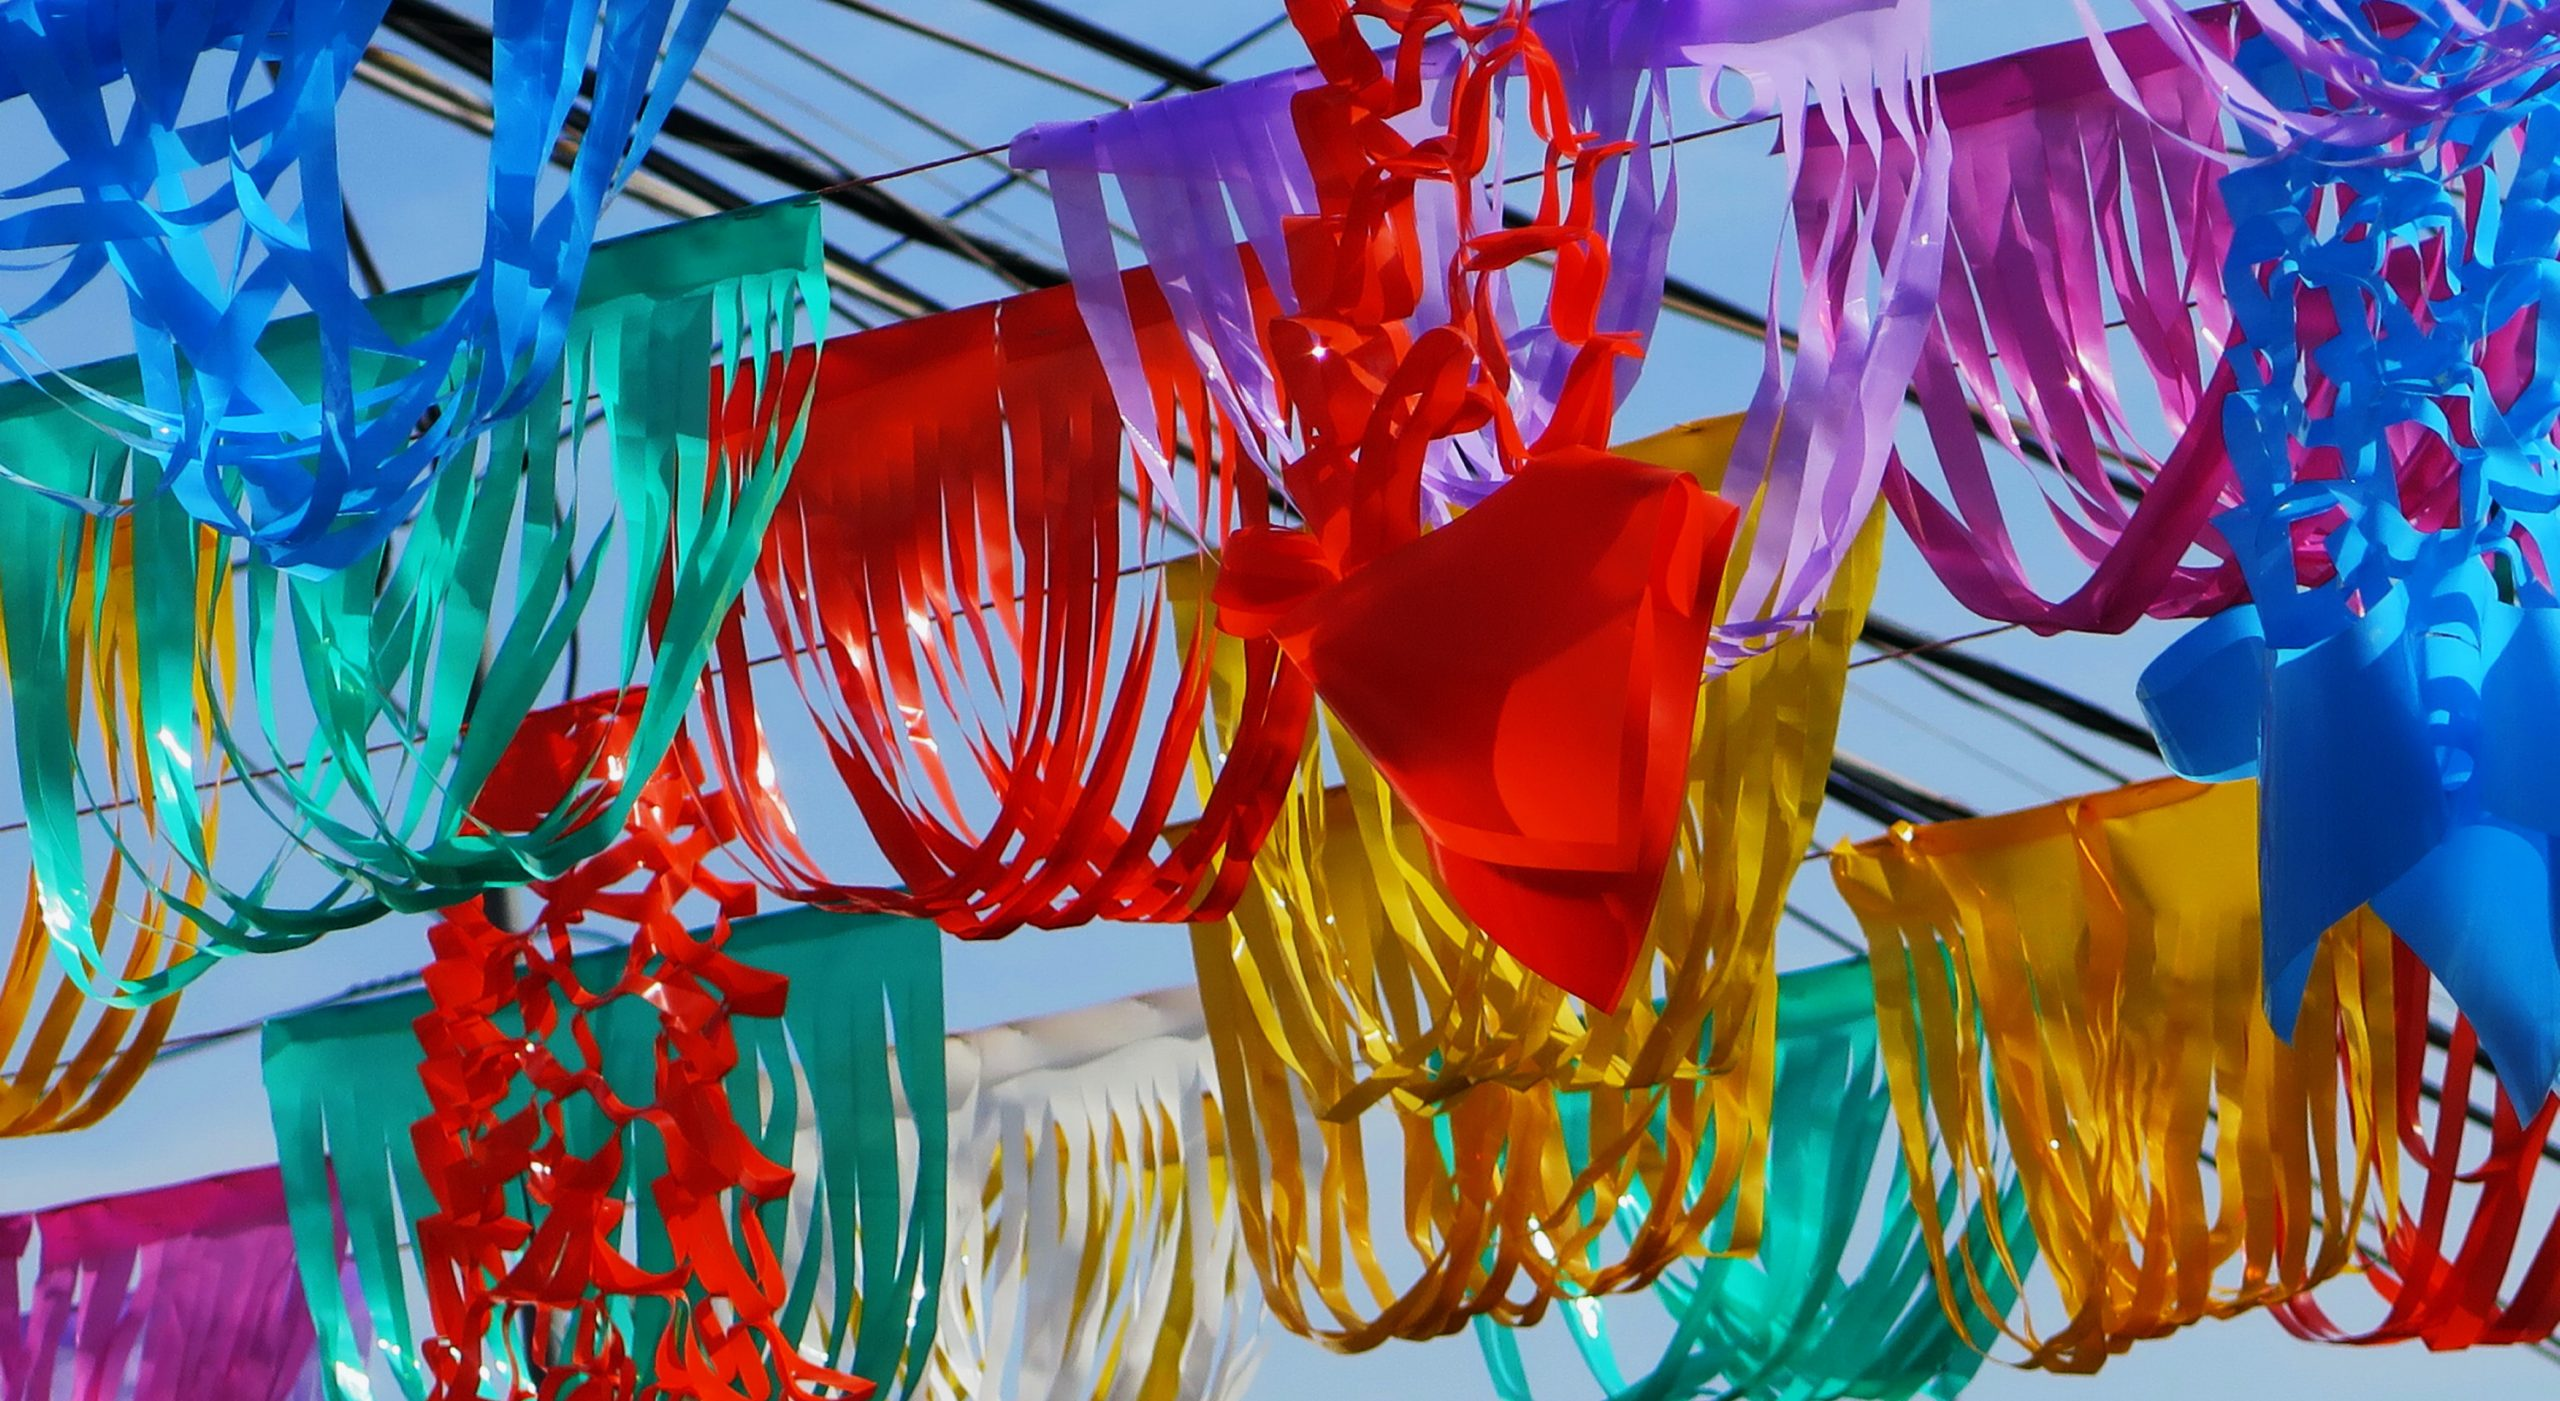 Very colorful streamers and decorations hanging up on lines